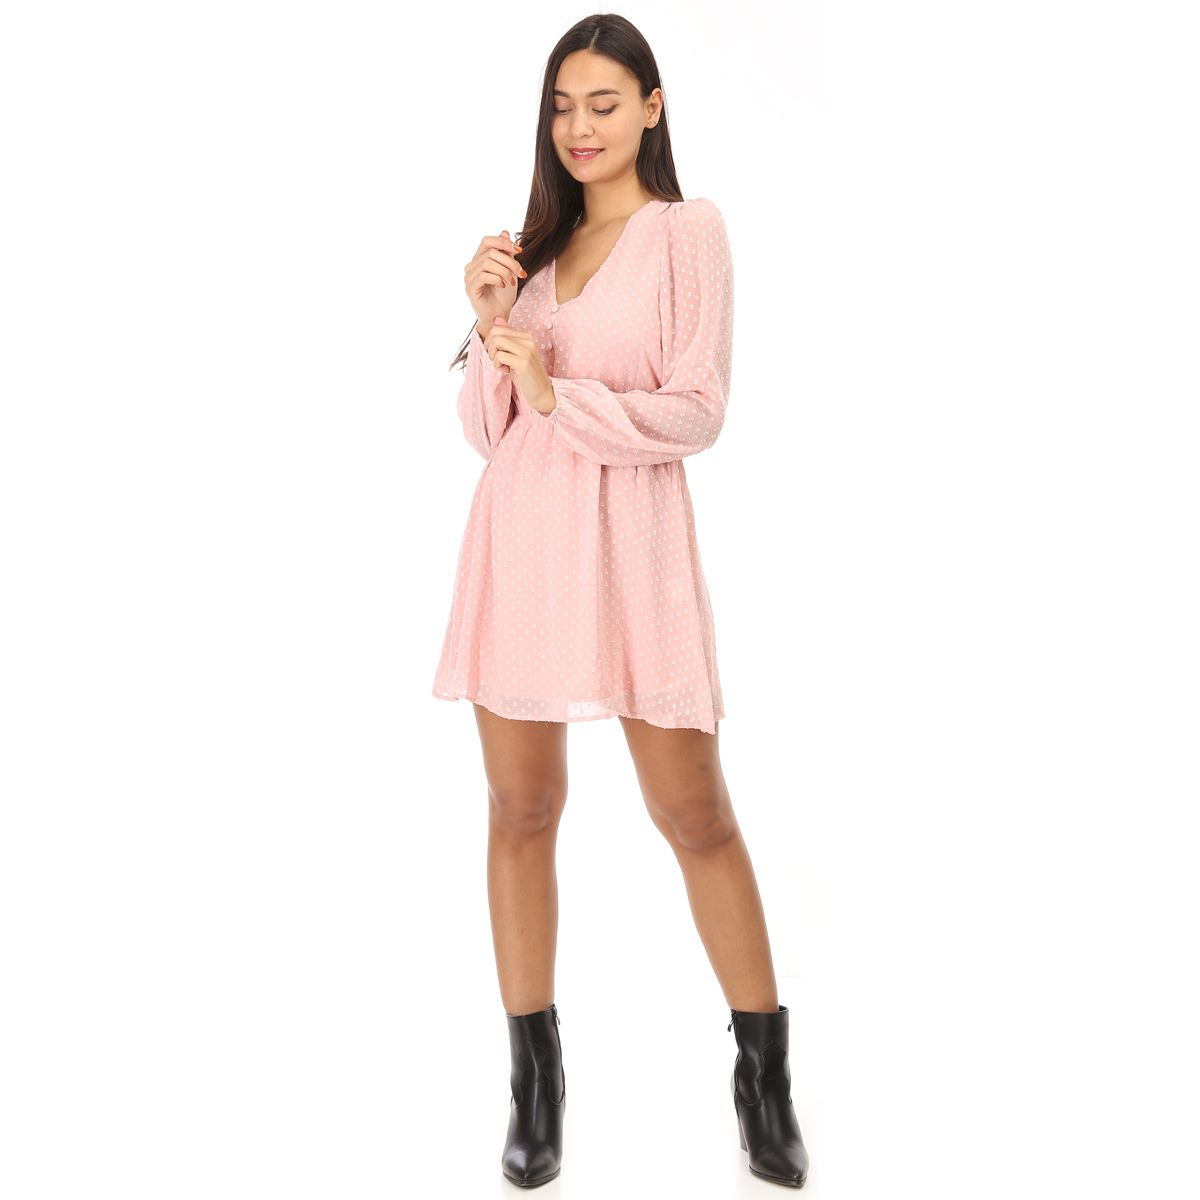 Robe rose à pois et transparence